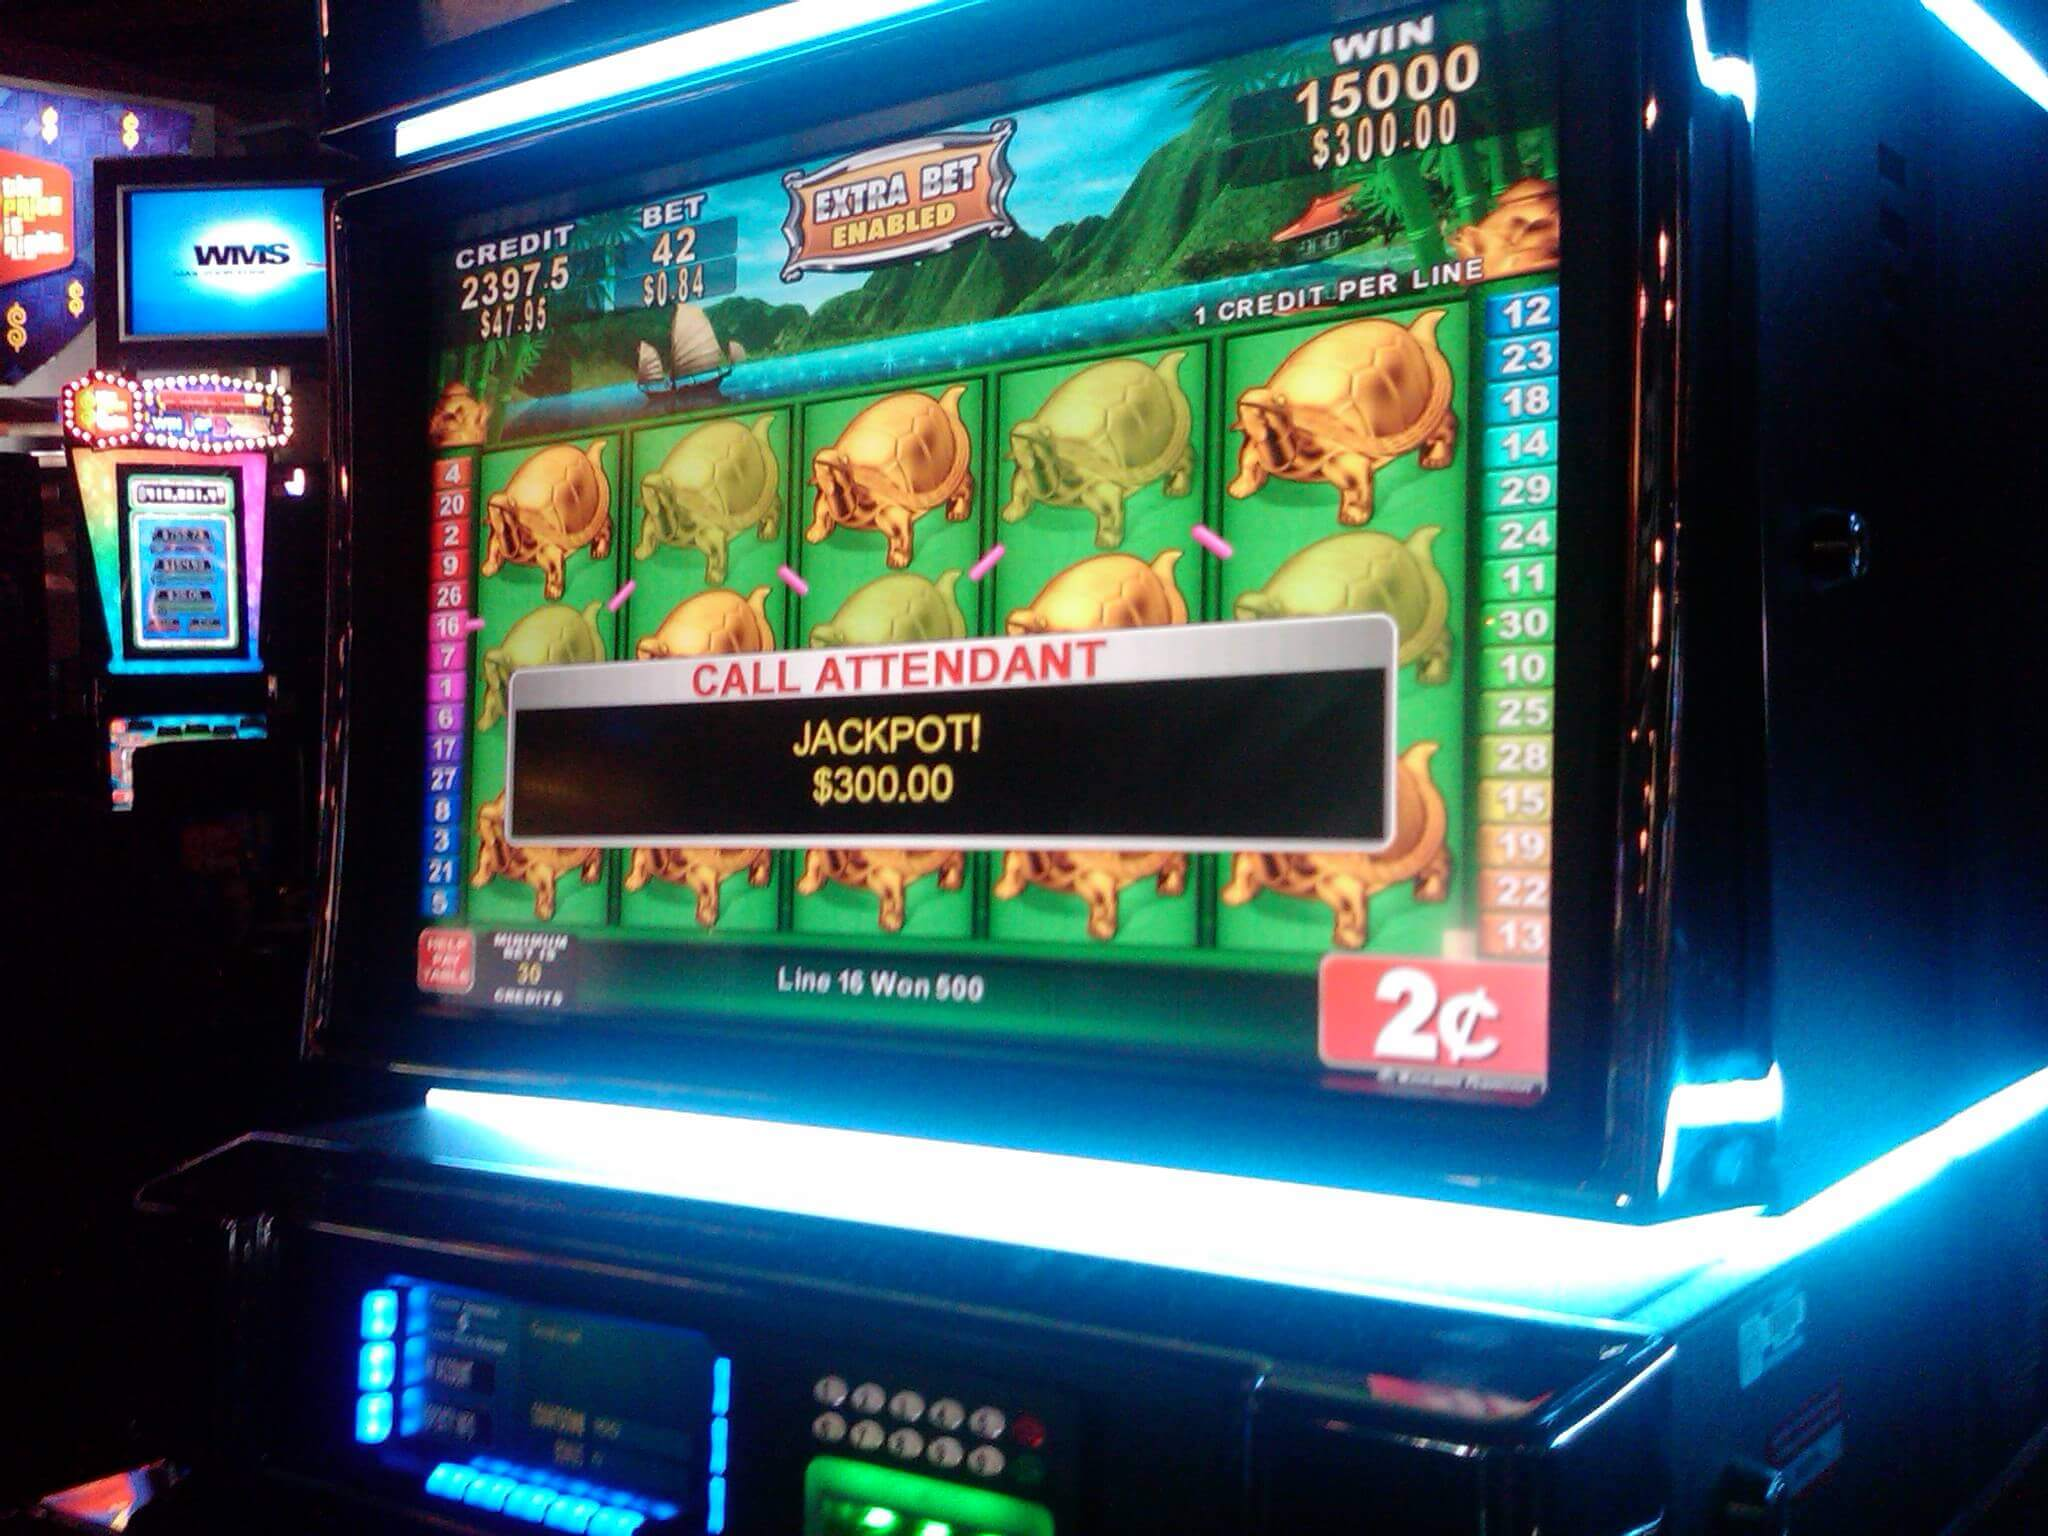 What Is SCR888 Slot Game Need for Winning Jackpot?